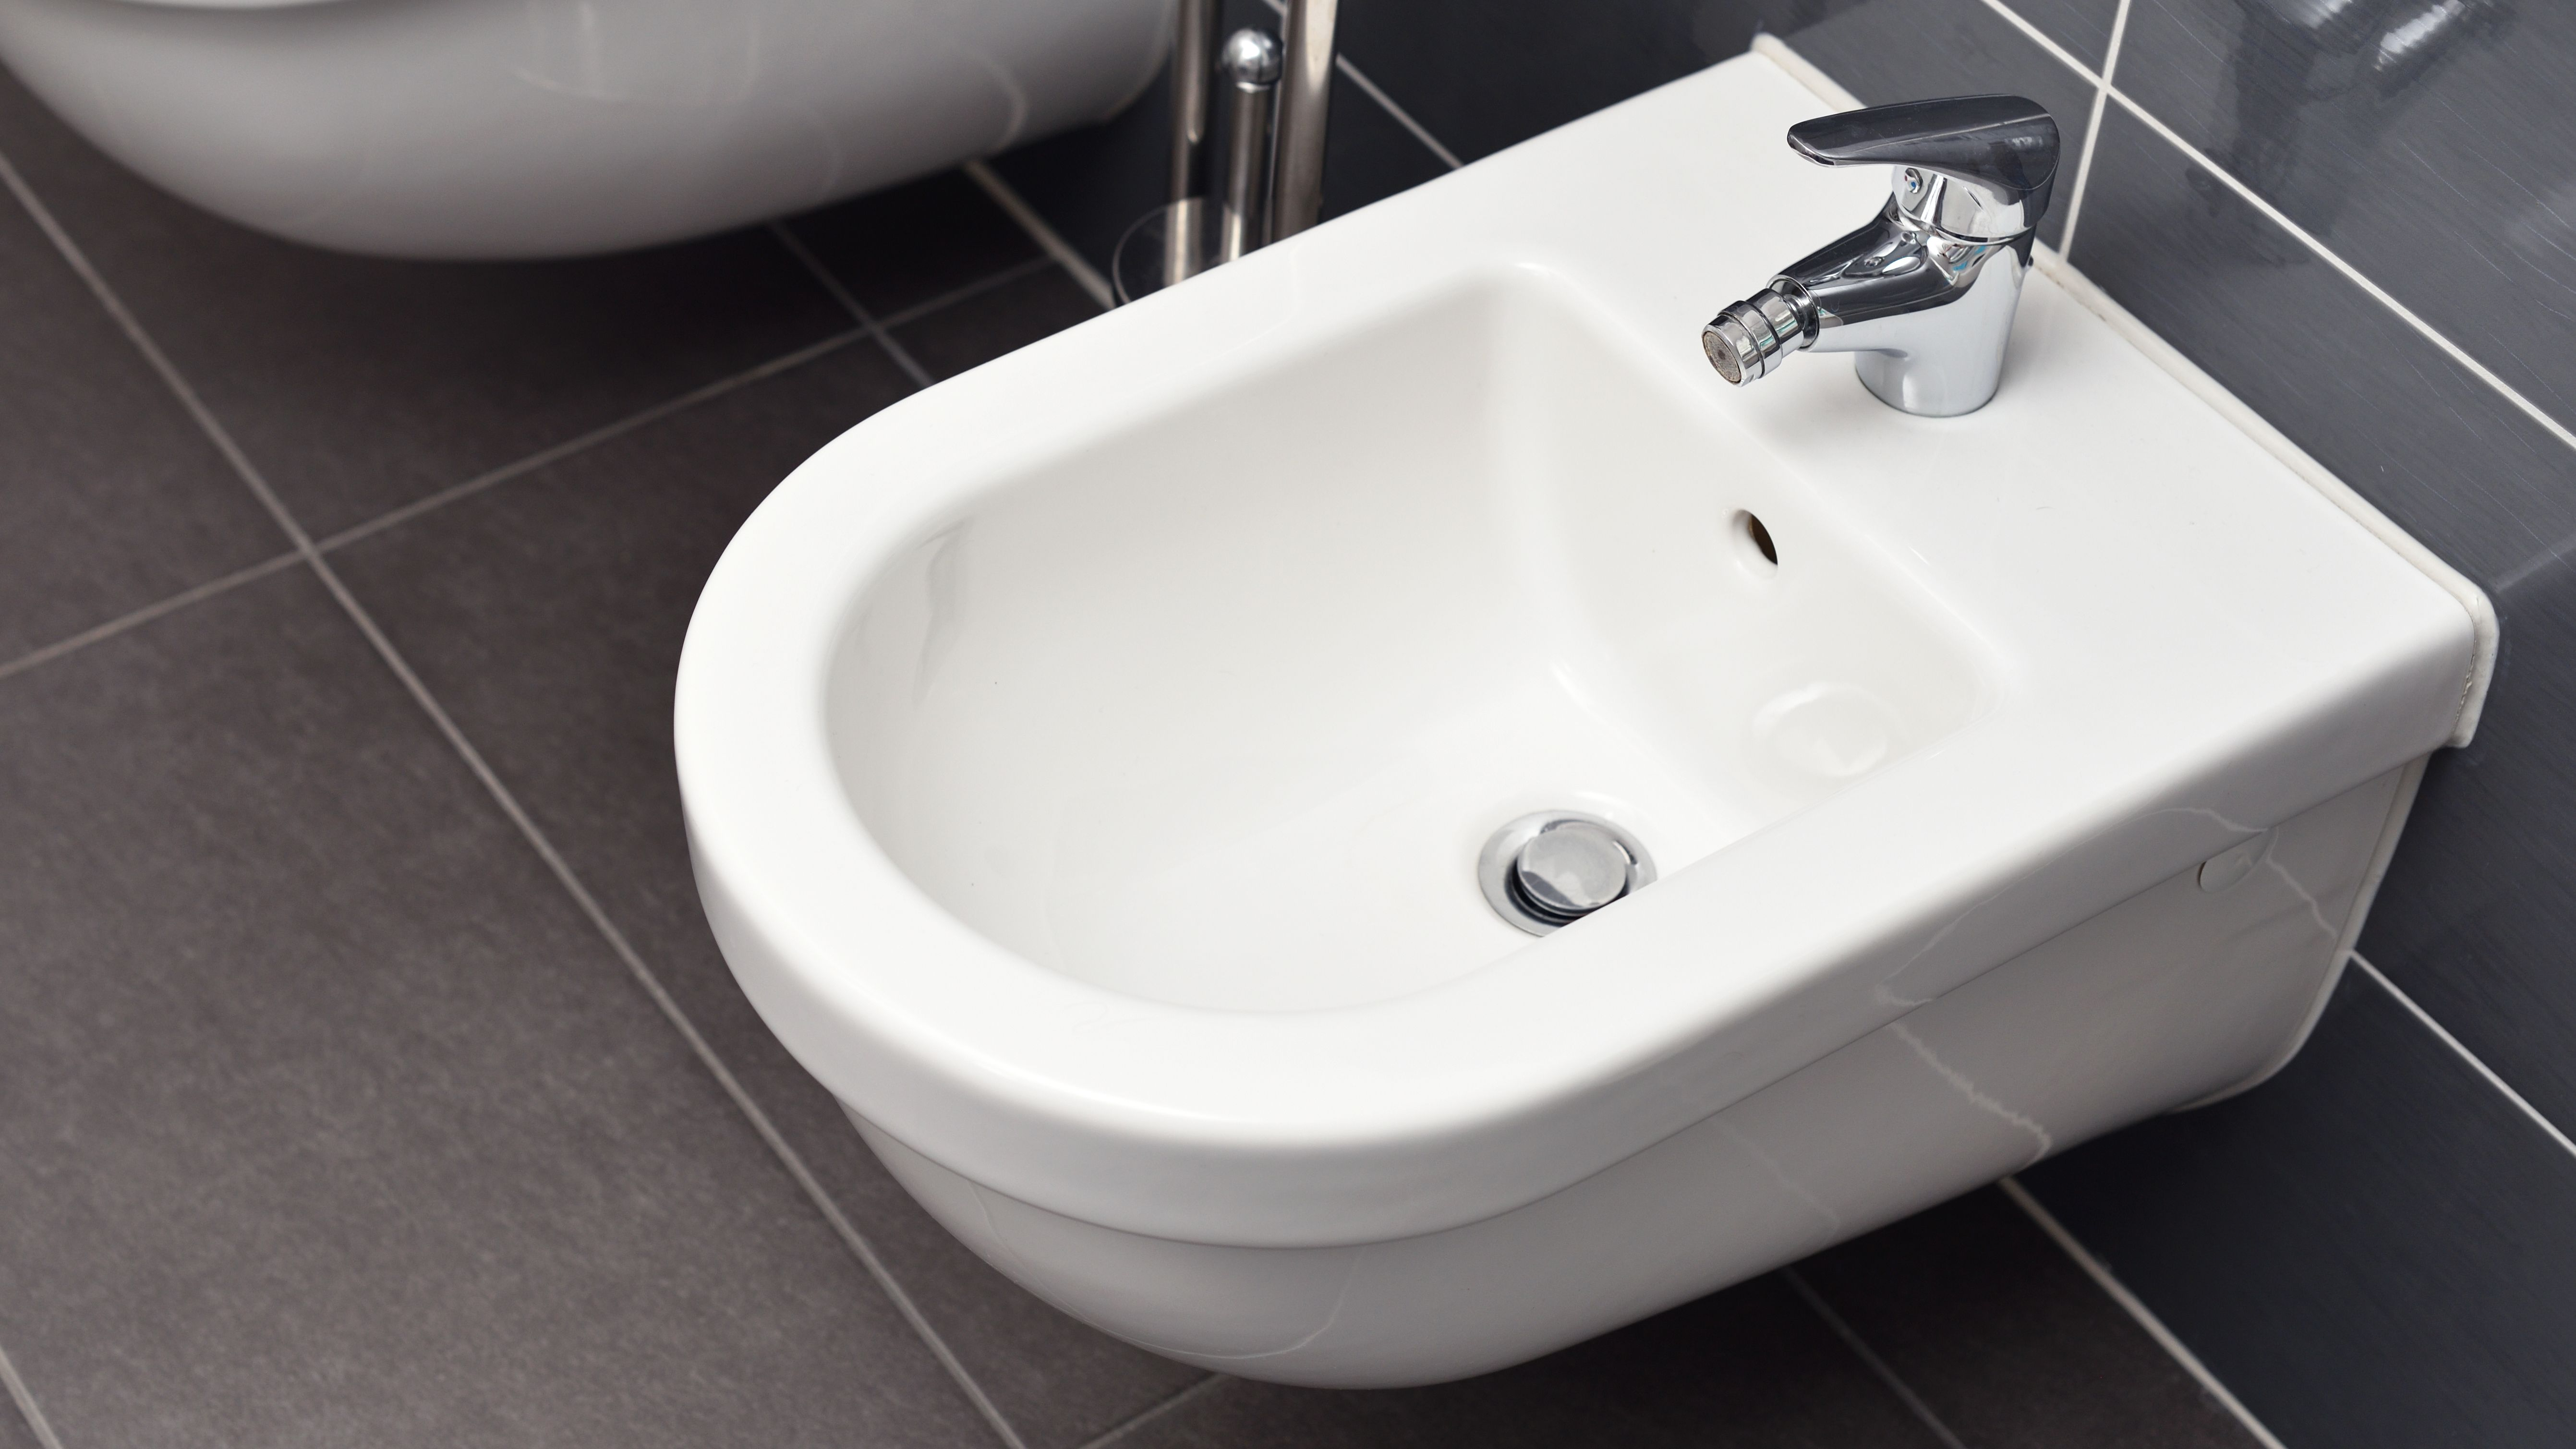 Bidet buying guide